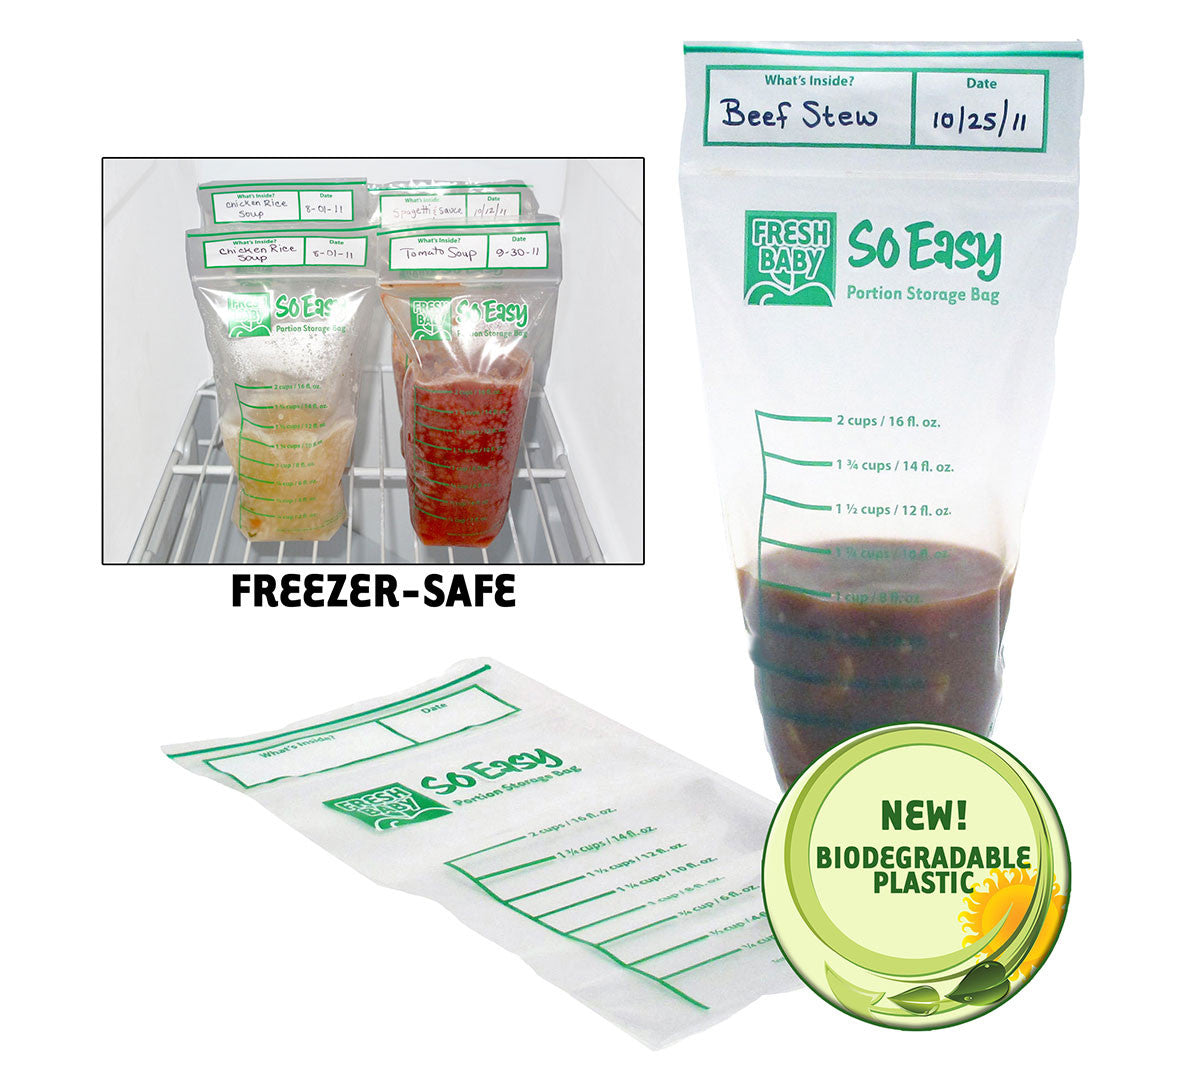 Fresh Baby's So Easy Portion Storage Bags are a simple storage solution! Freezer-safe food storage bags with measurement marks to help with portion sizes.